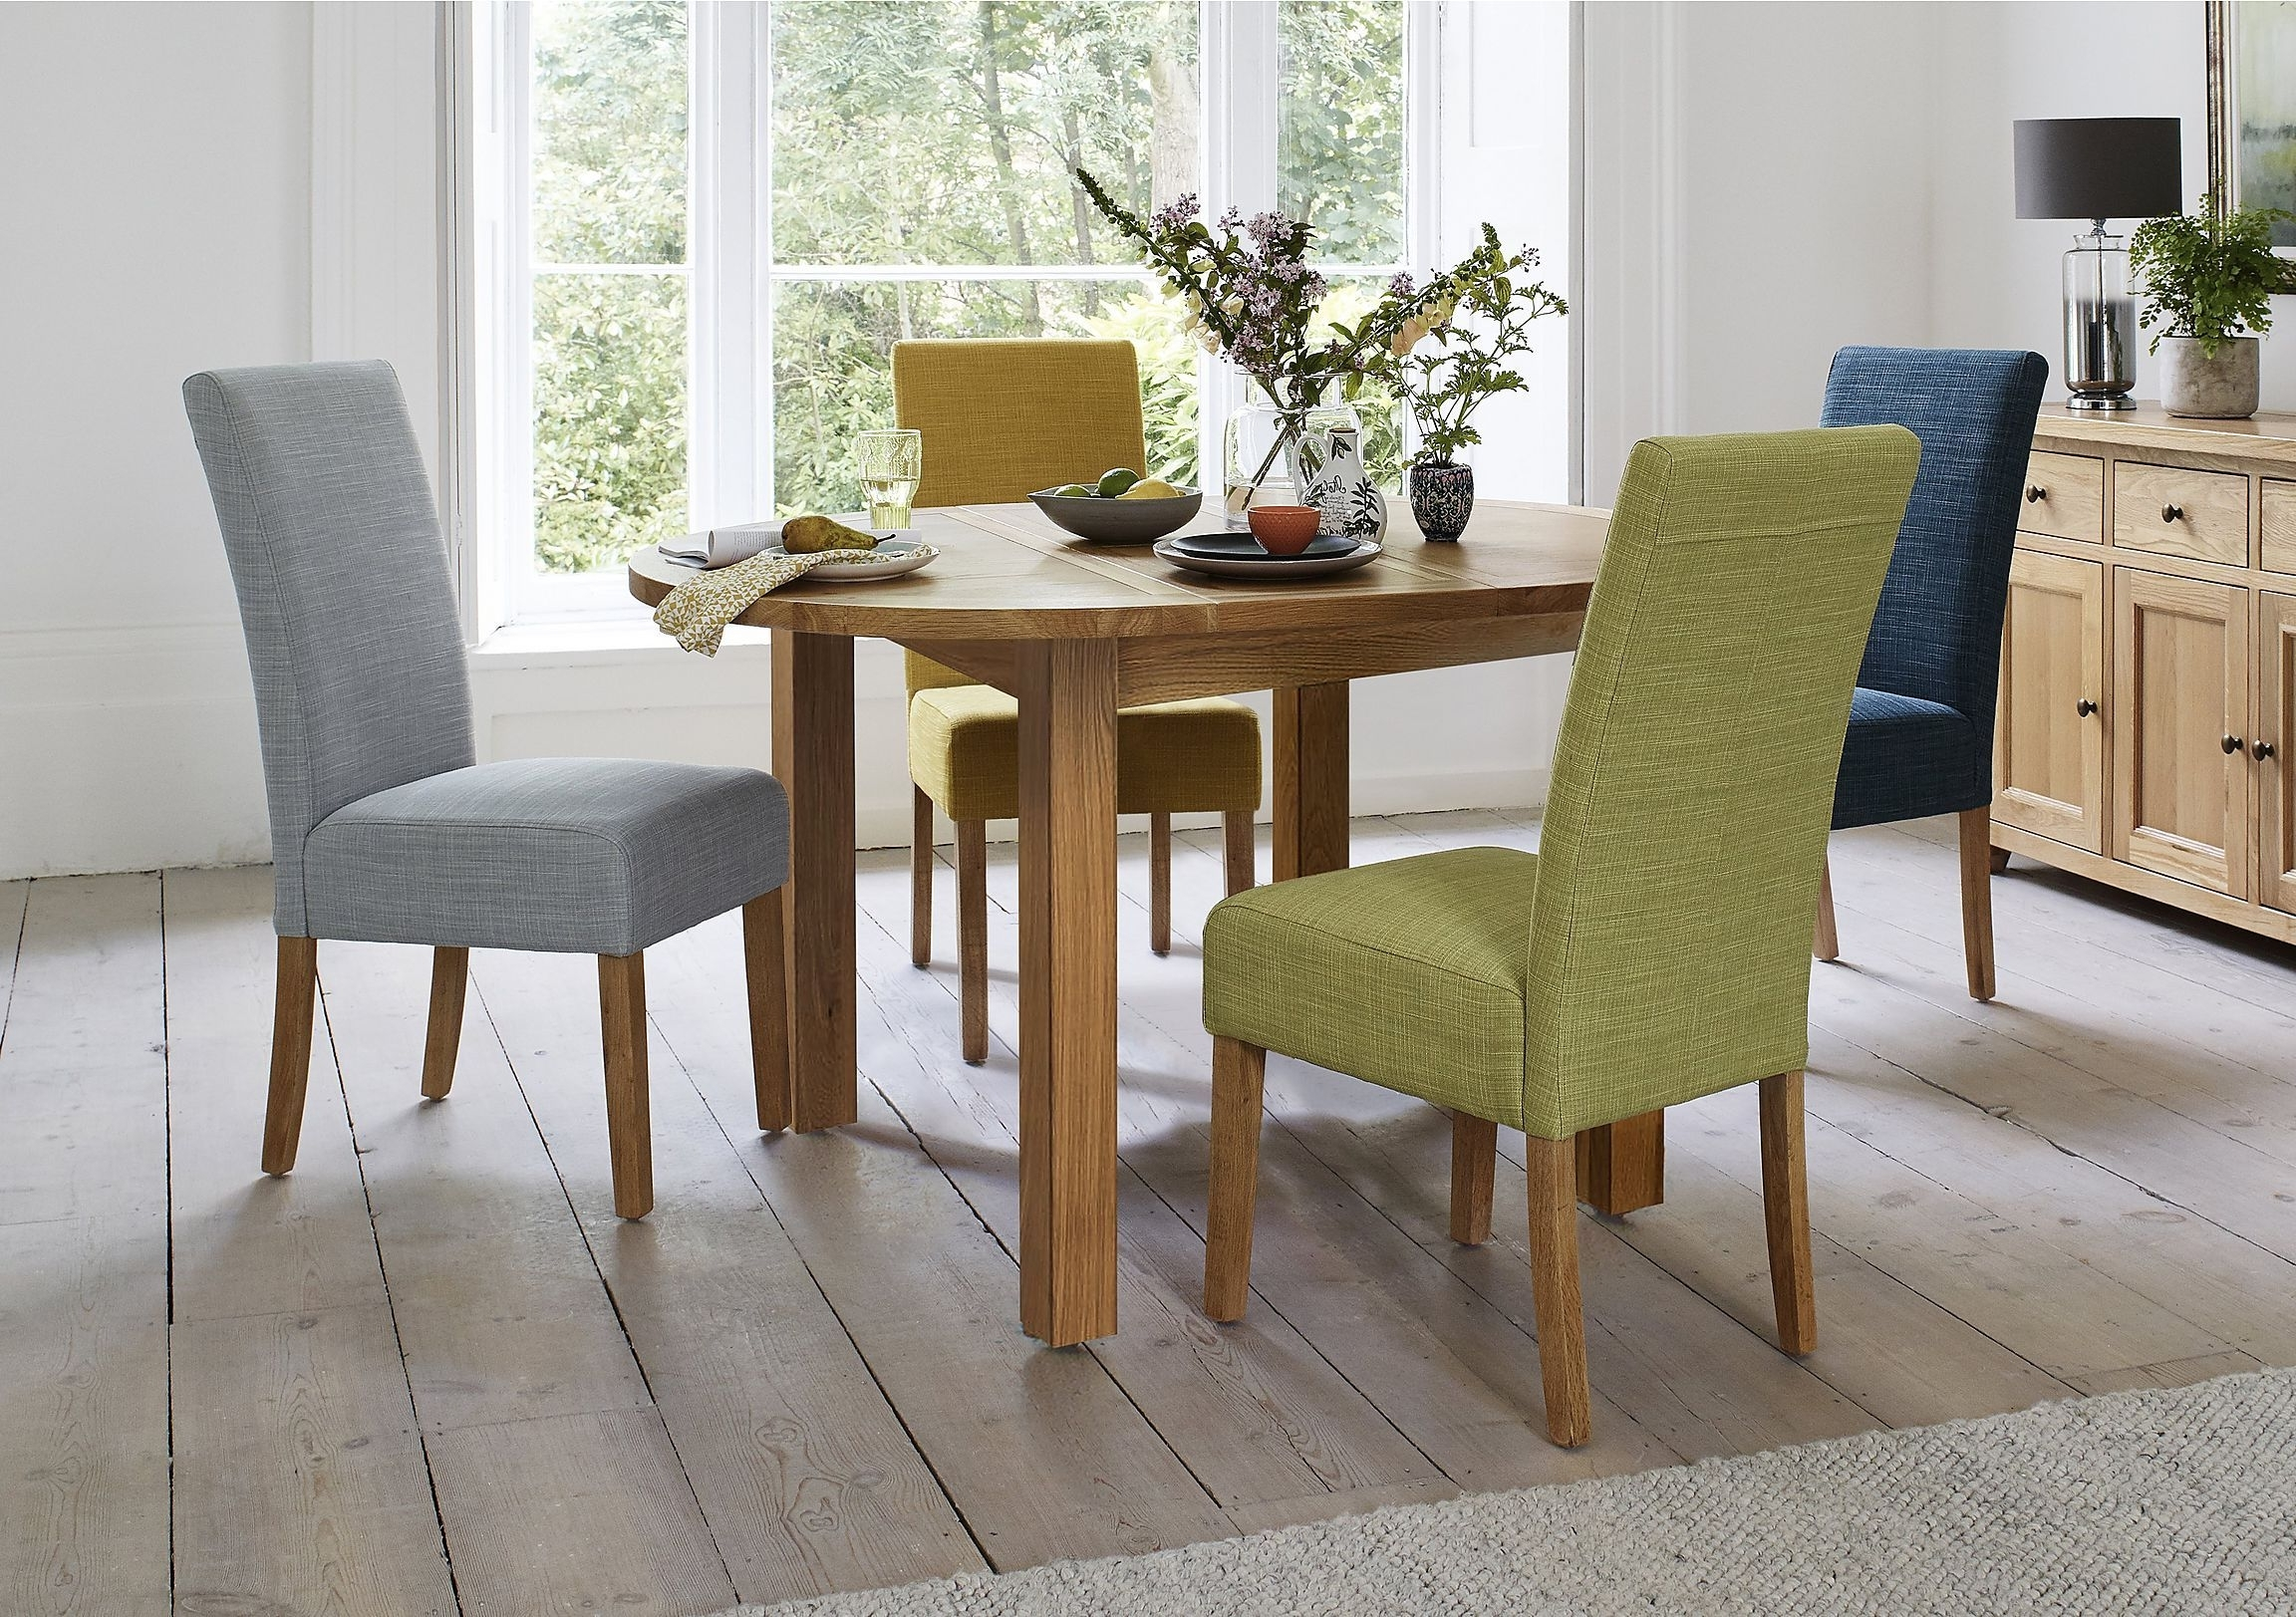 Dining Set Includes 4 Versatile Dining Chairs Upholstered In Fabric With Current Round Oak Dining Tables And 4 Chairs (View 5 of 25)